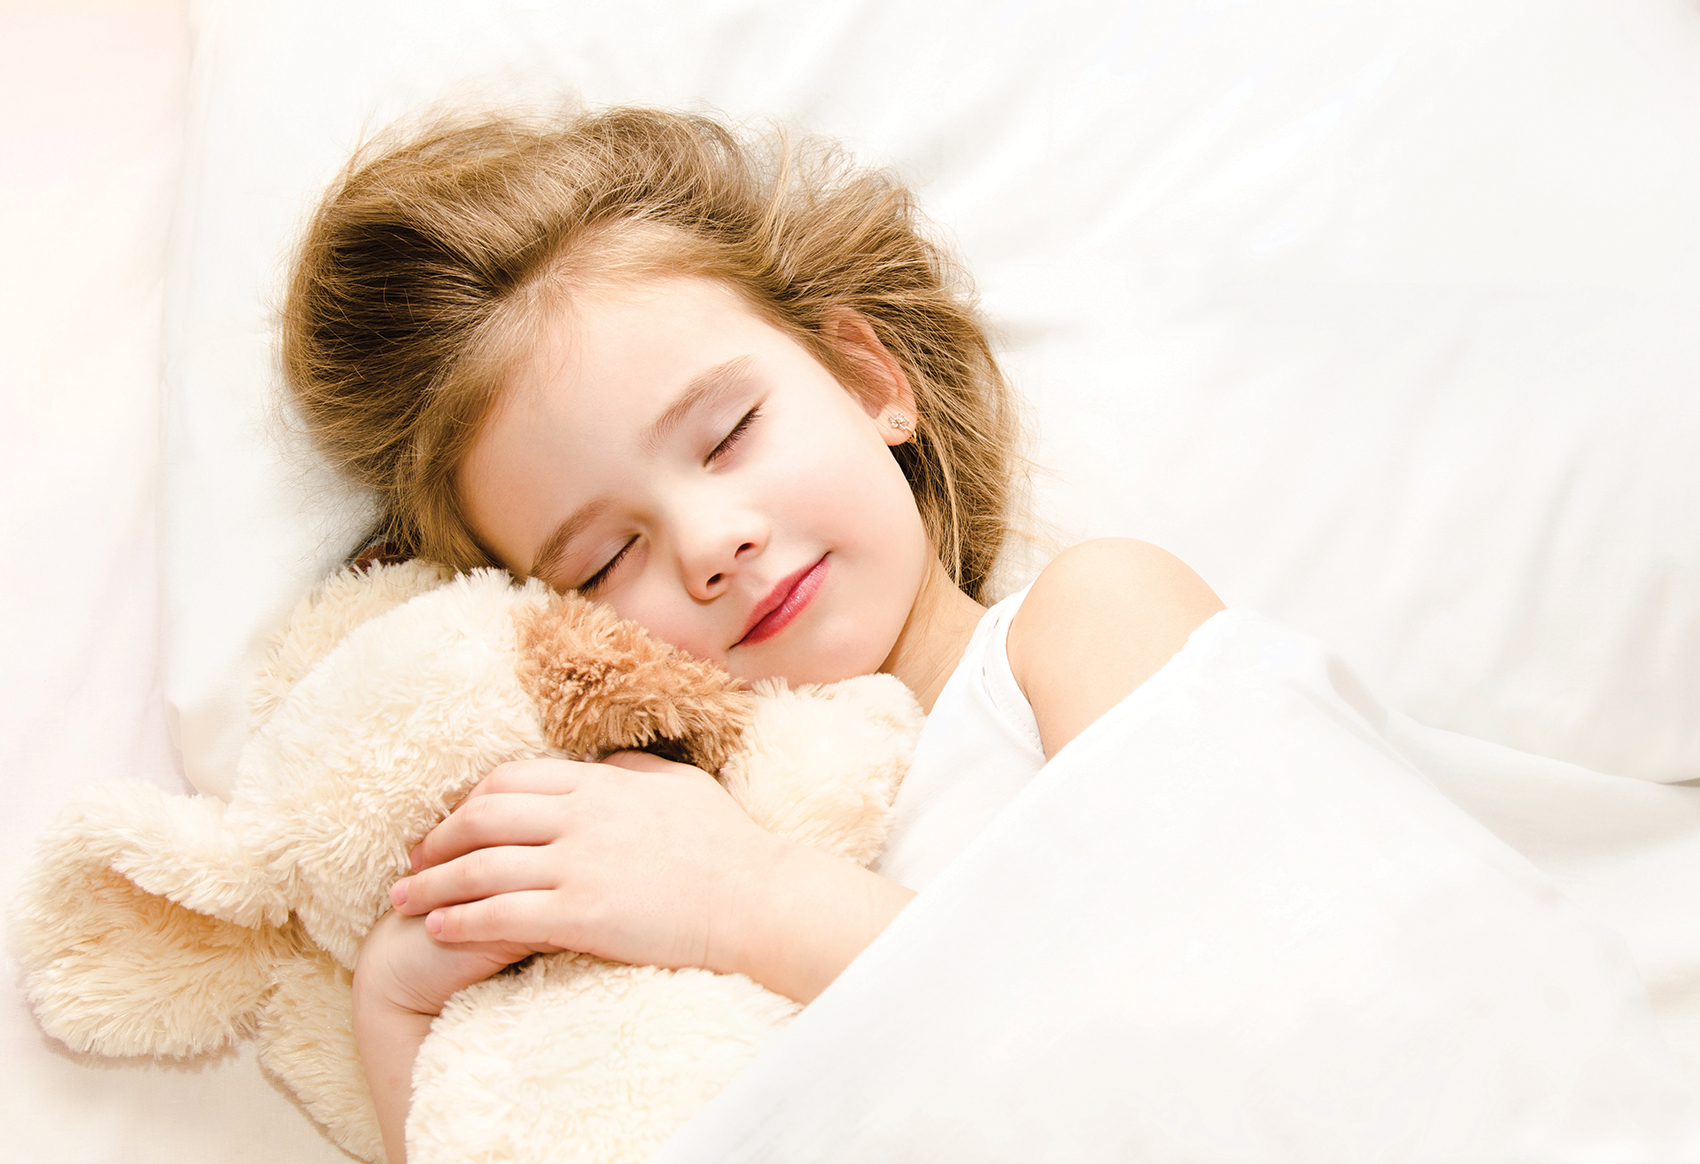 how to sleep kids parents girl sleeping holding stuffed animal